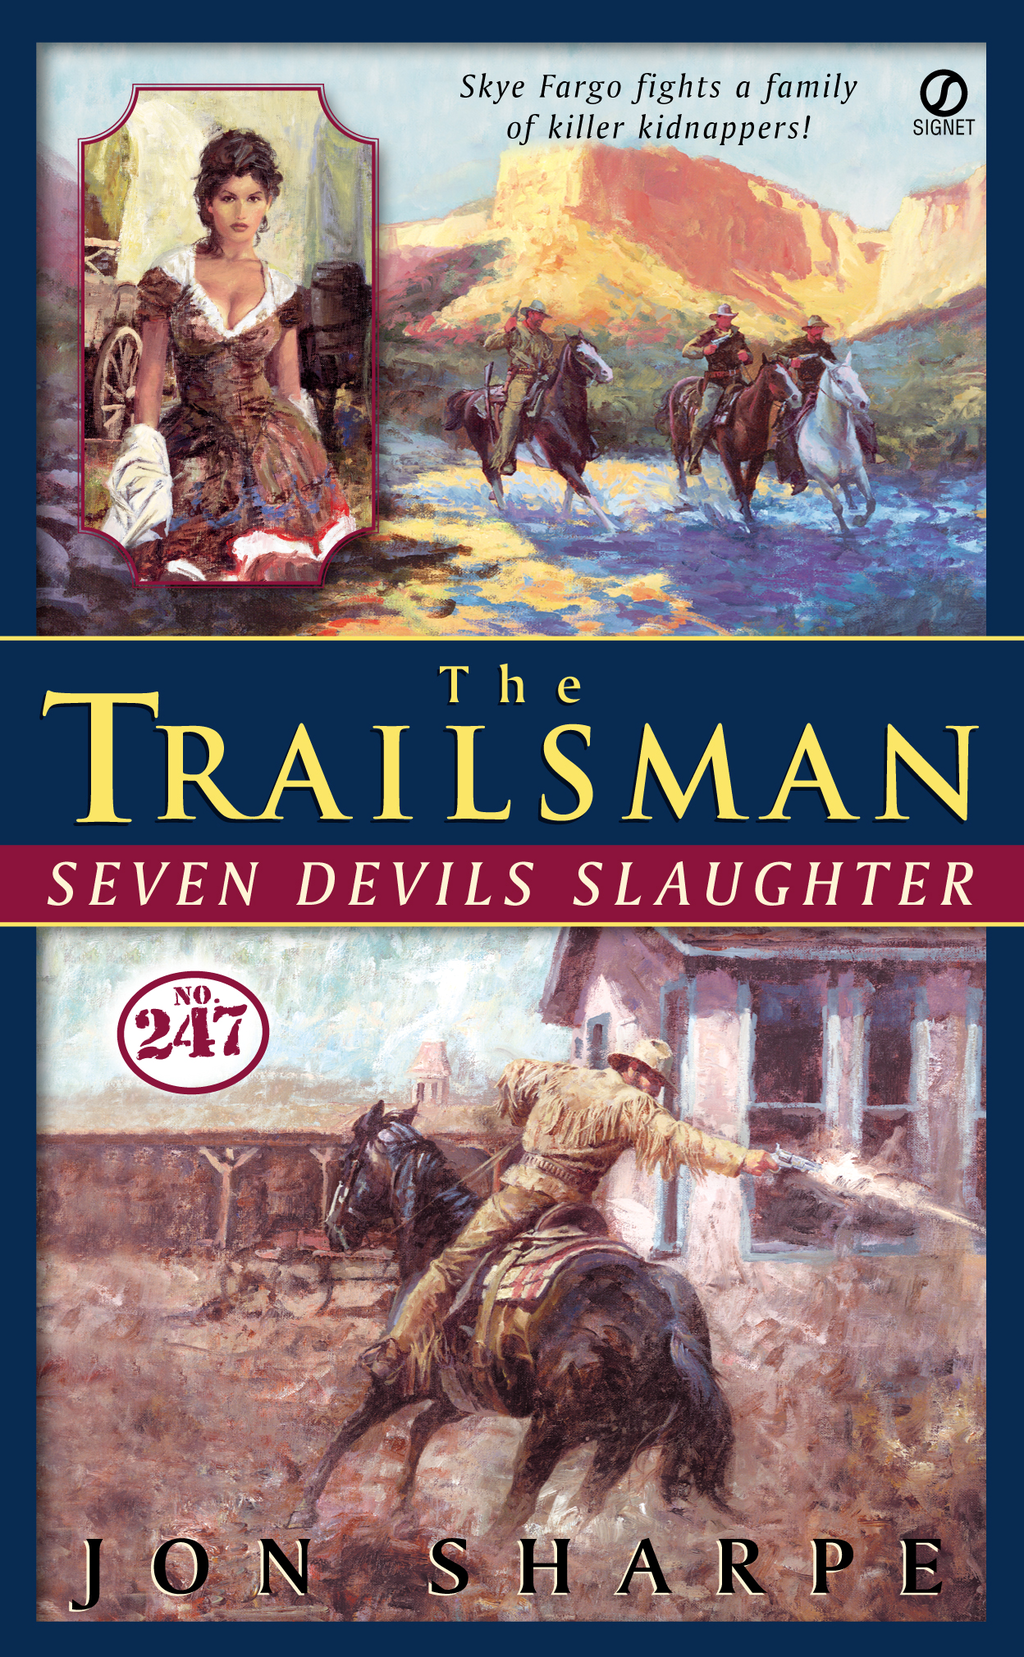 Trailsman #247, The: